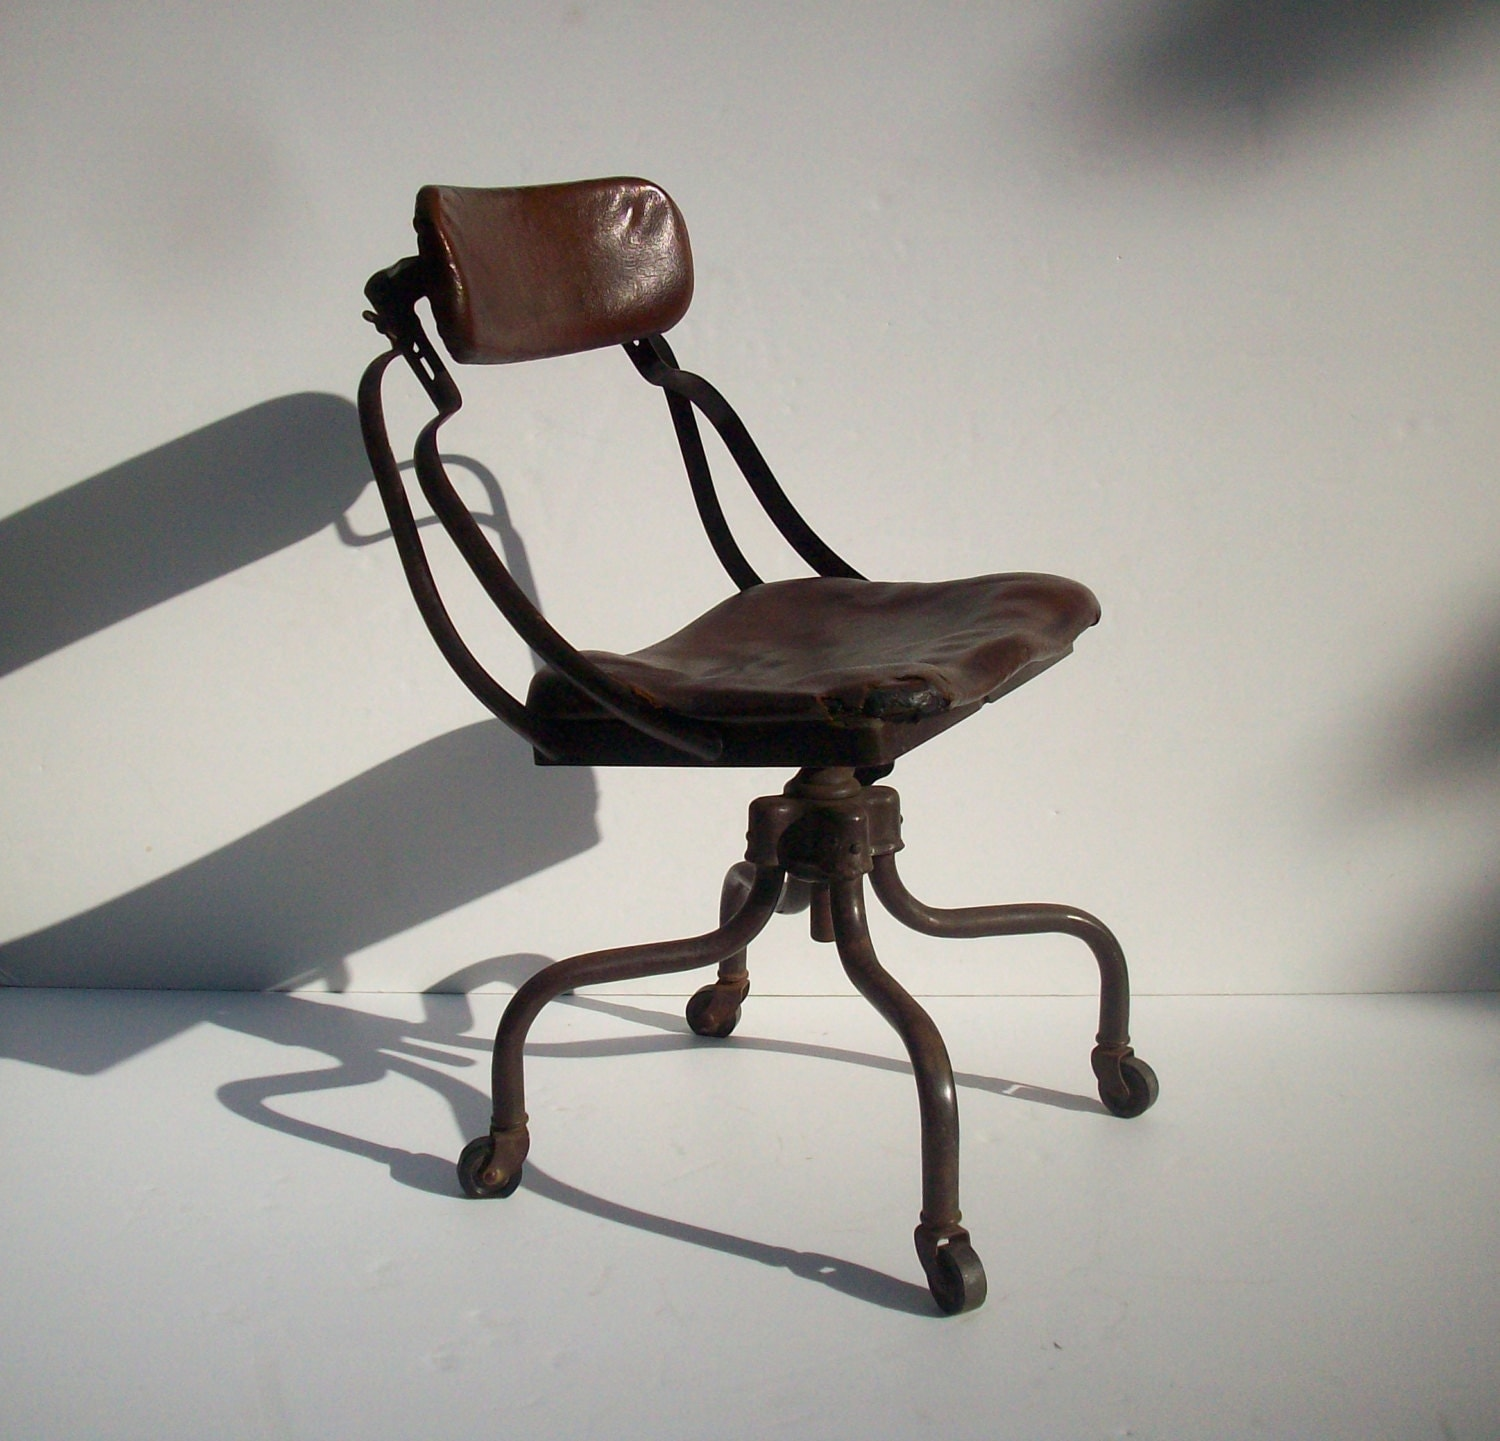 SALE Vintage Industrial Chair Fritz Cross Remington Rand